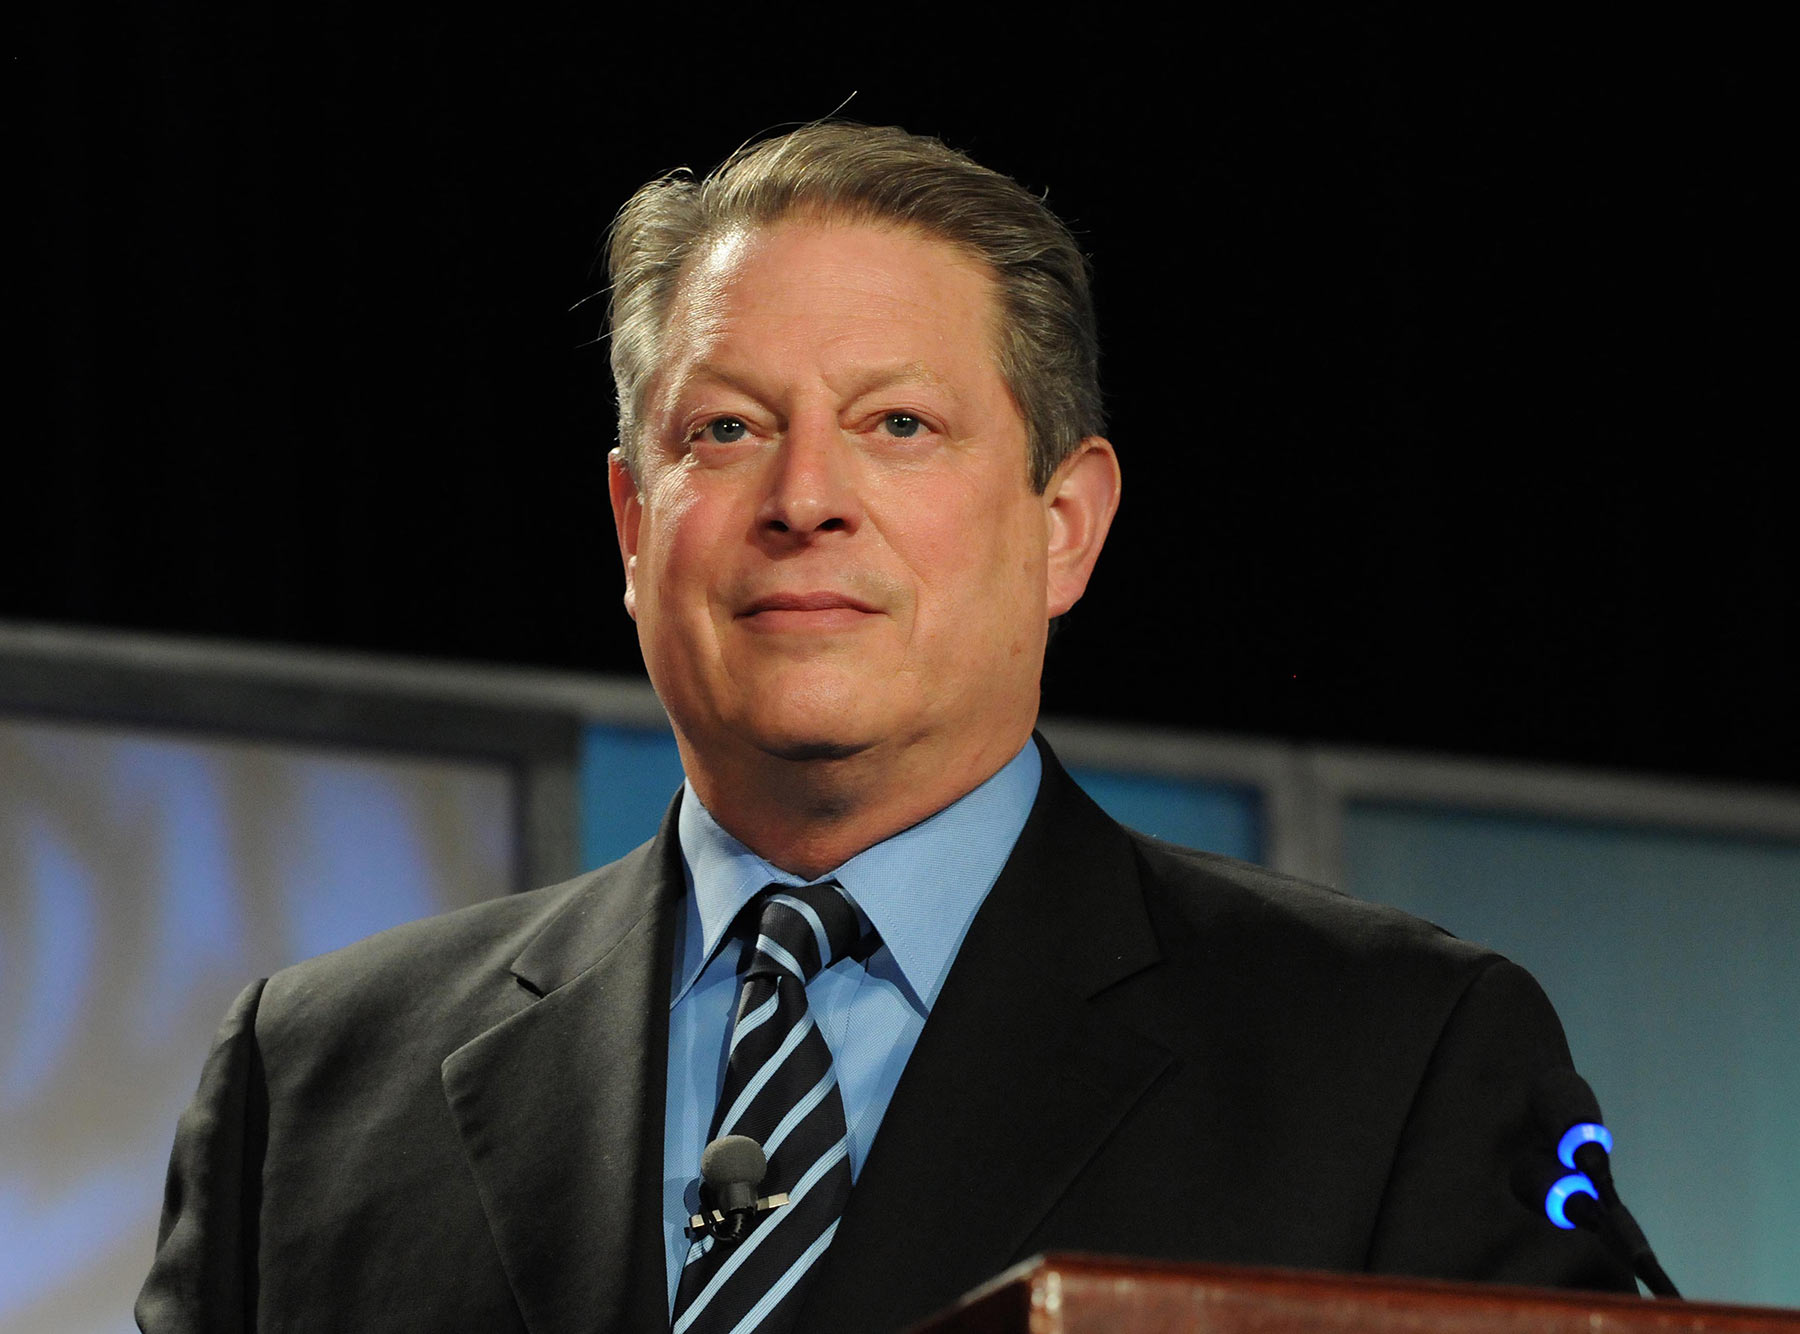 Al Gore at Web 2.0 in 2008